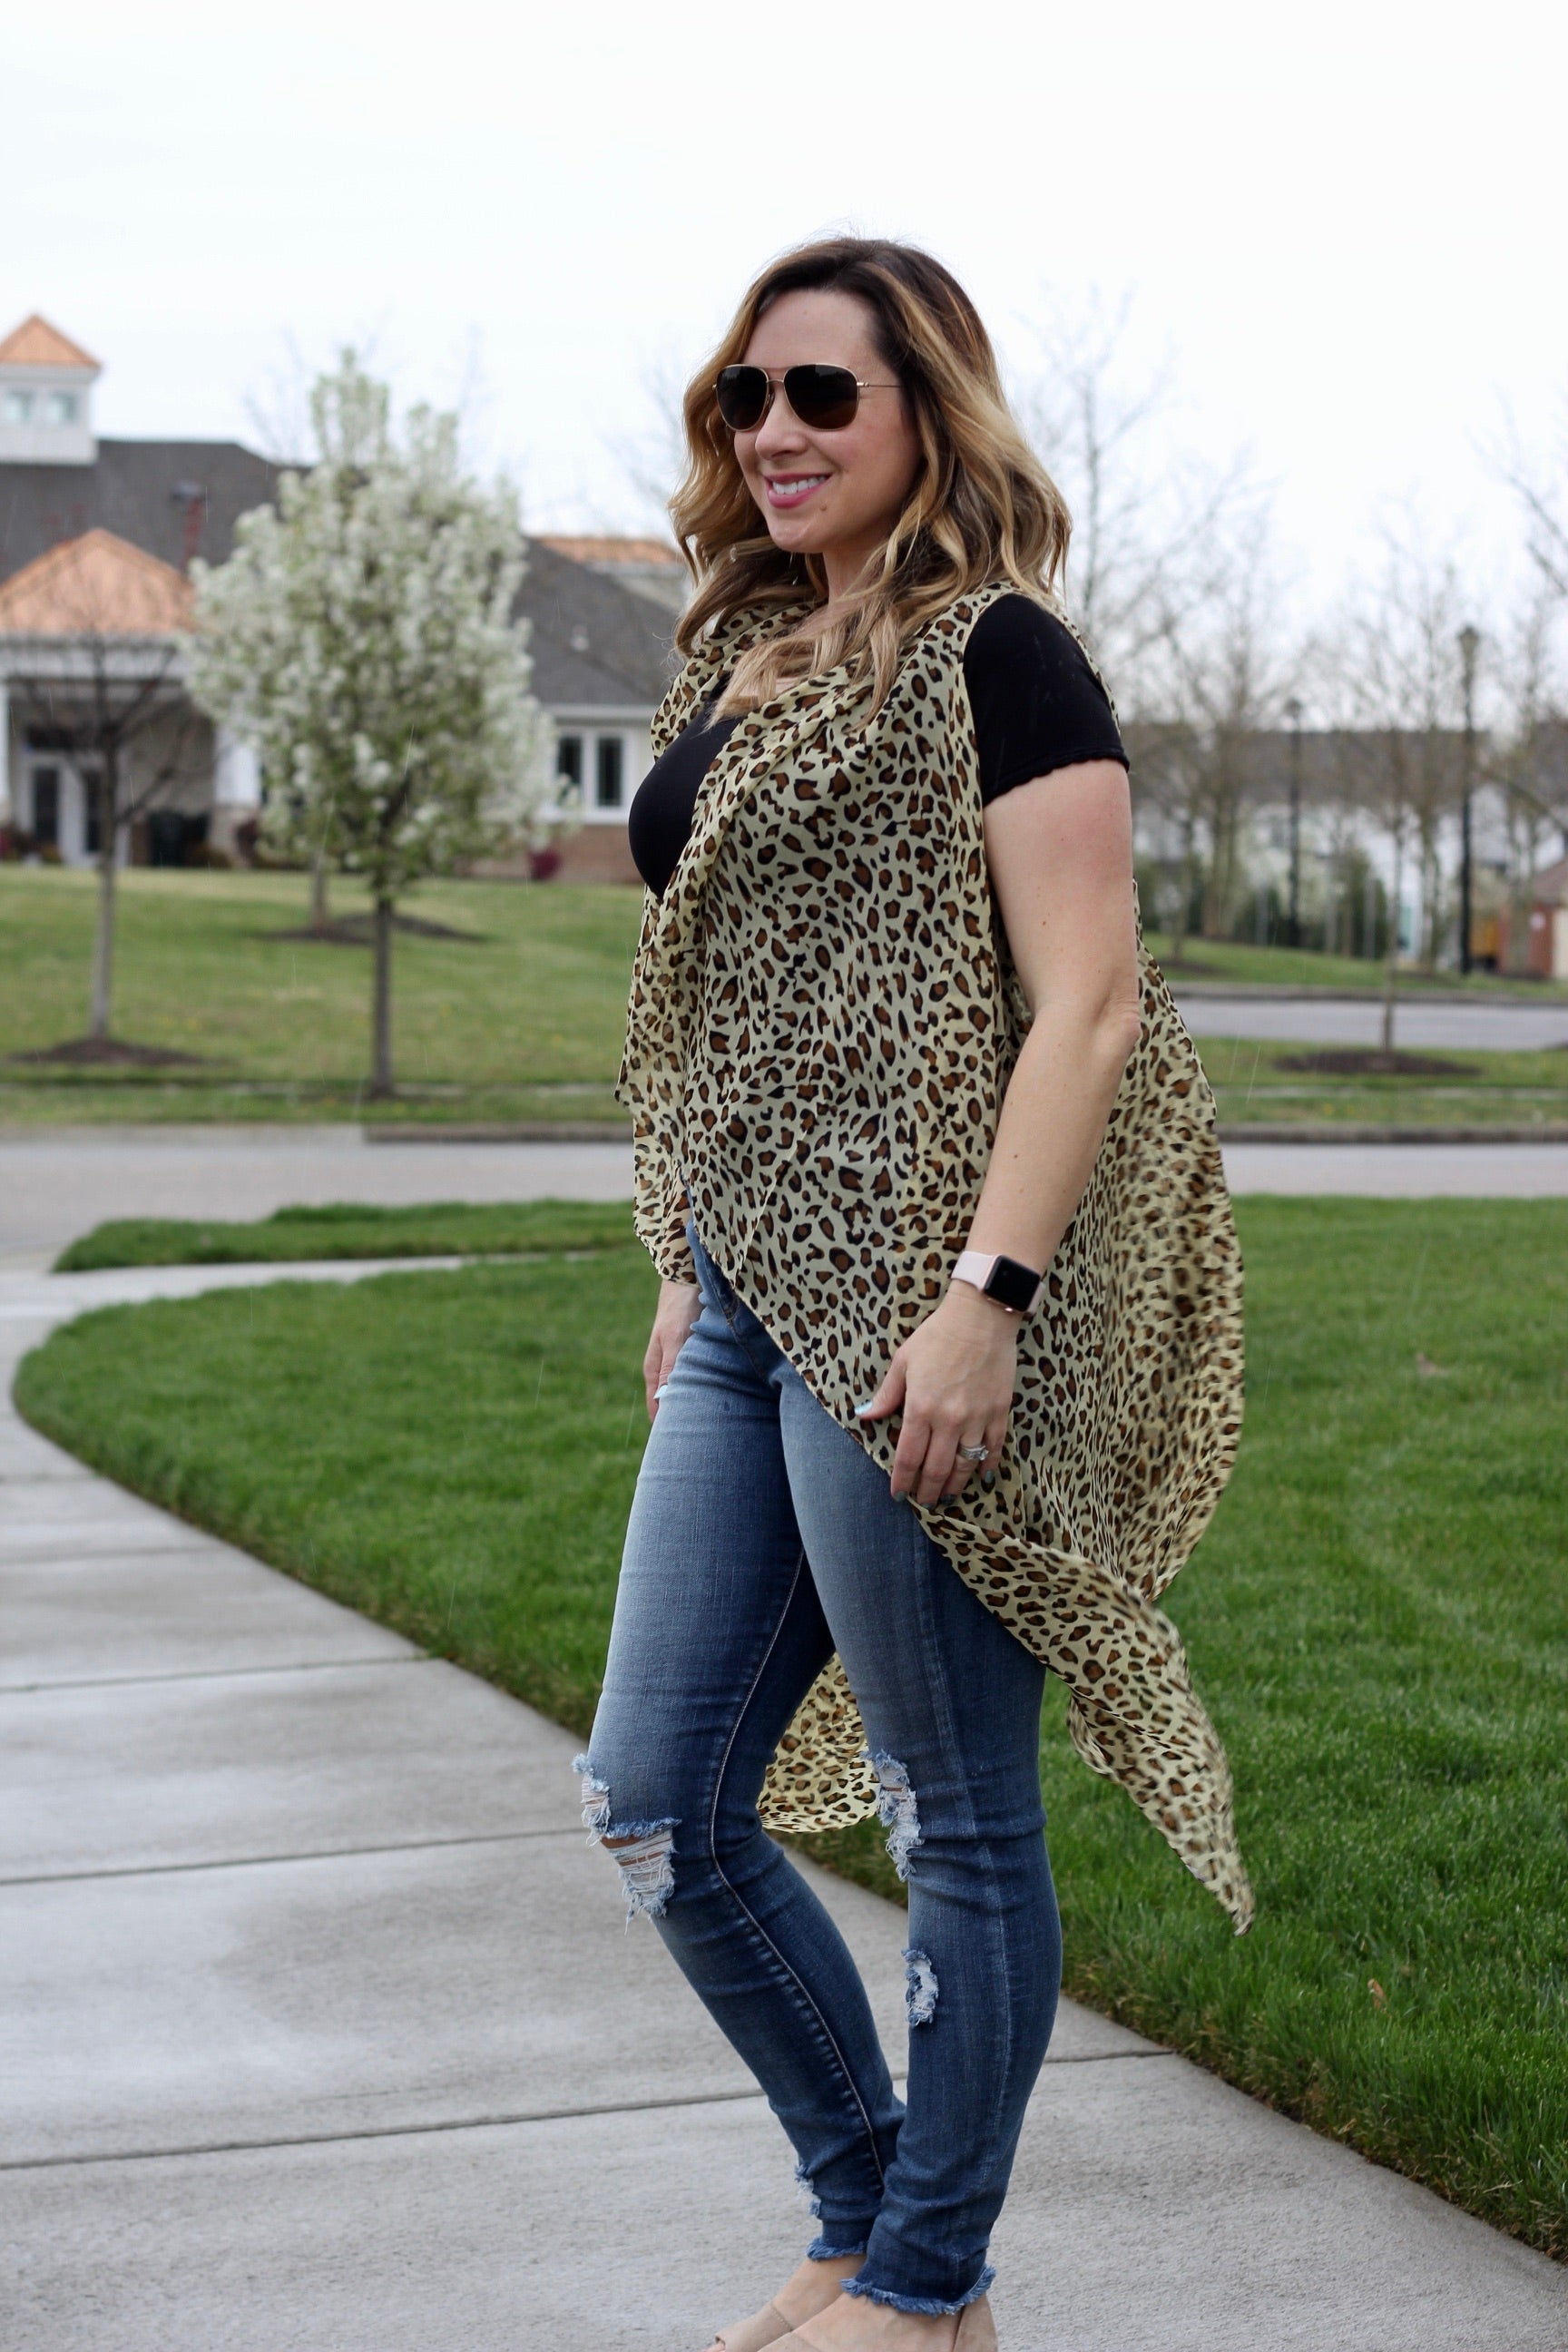 SPOTTED LEOPARD PRINT SHEER SHAWL